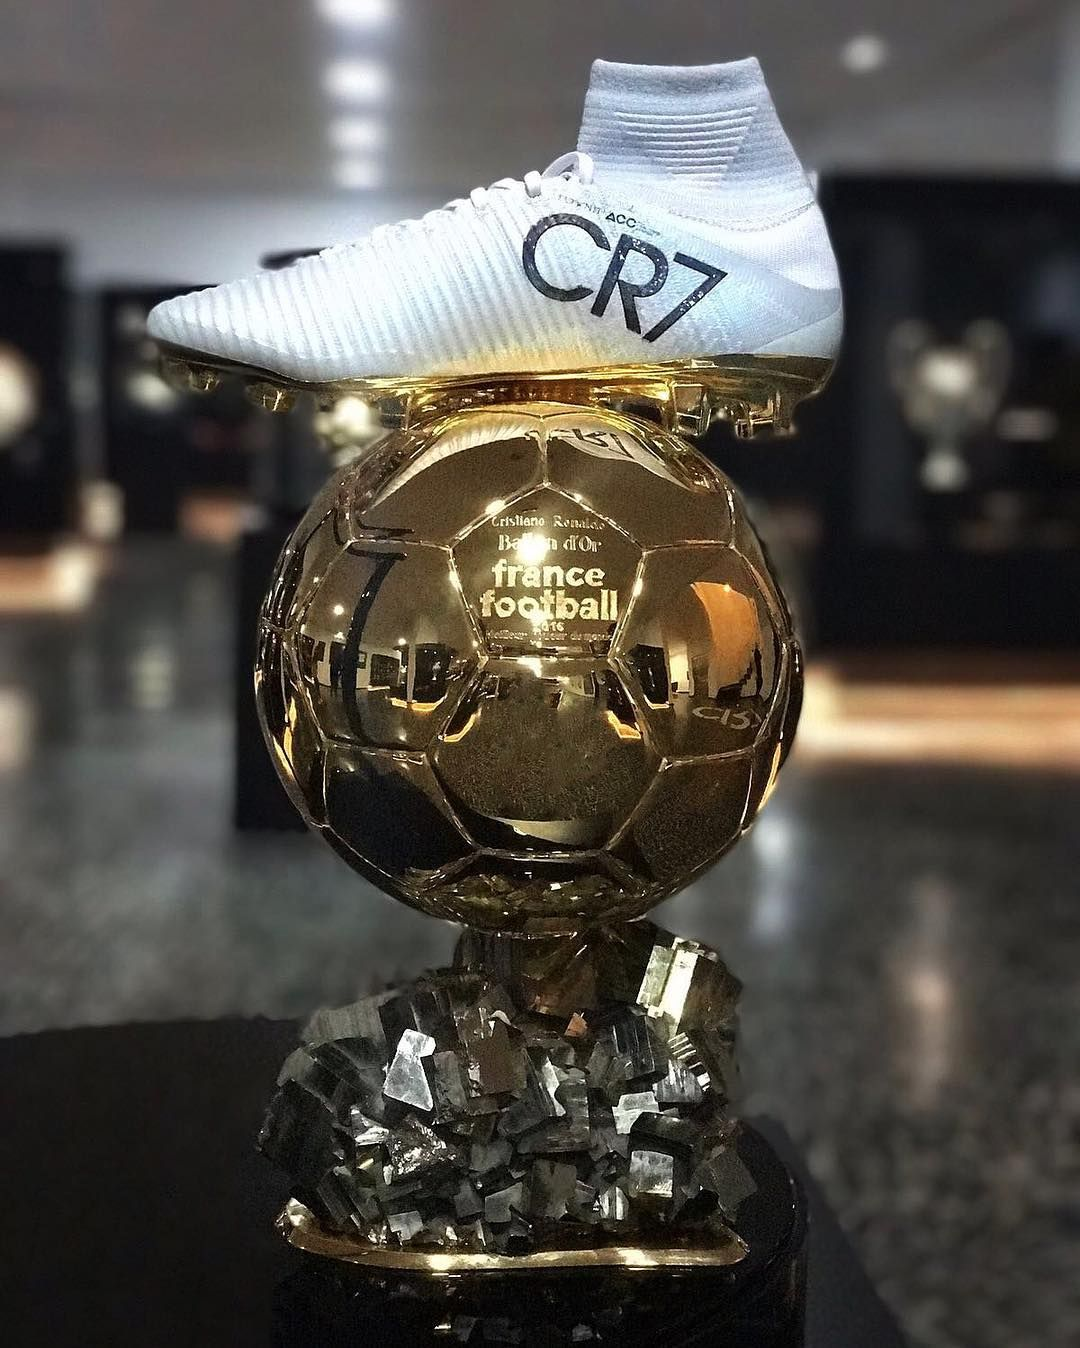 852095e6dd Honoured to wear my CR7 Mercurial boots -- Ronaldo Cristiano Ronaldo as he  shared on social media his Ballon d Or award says He is honoured to wear  his CR7 ...